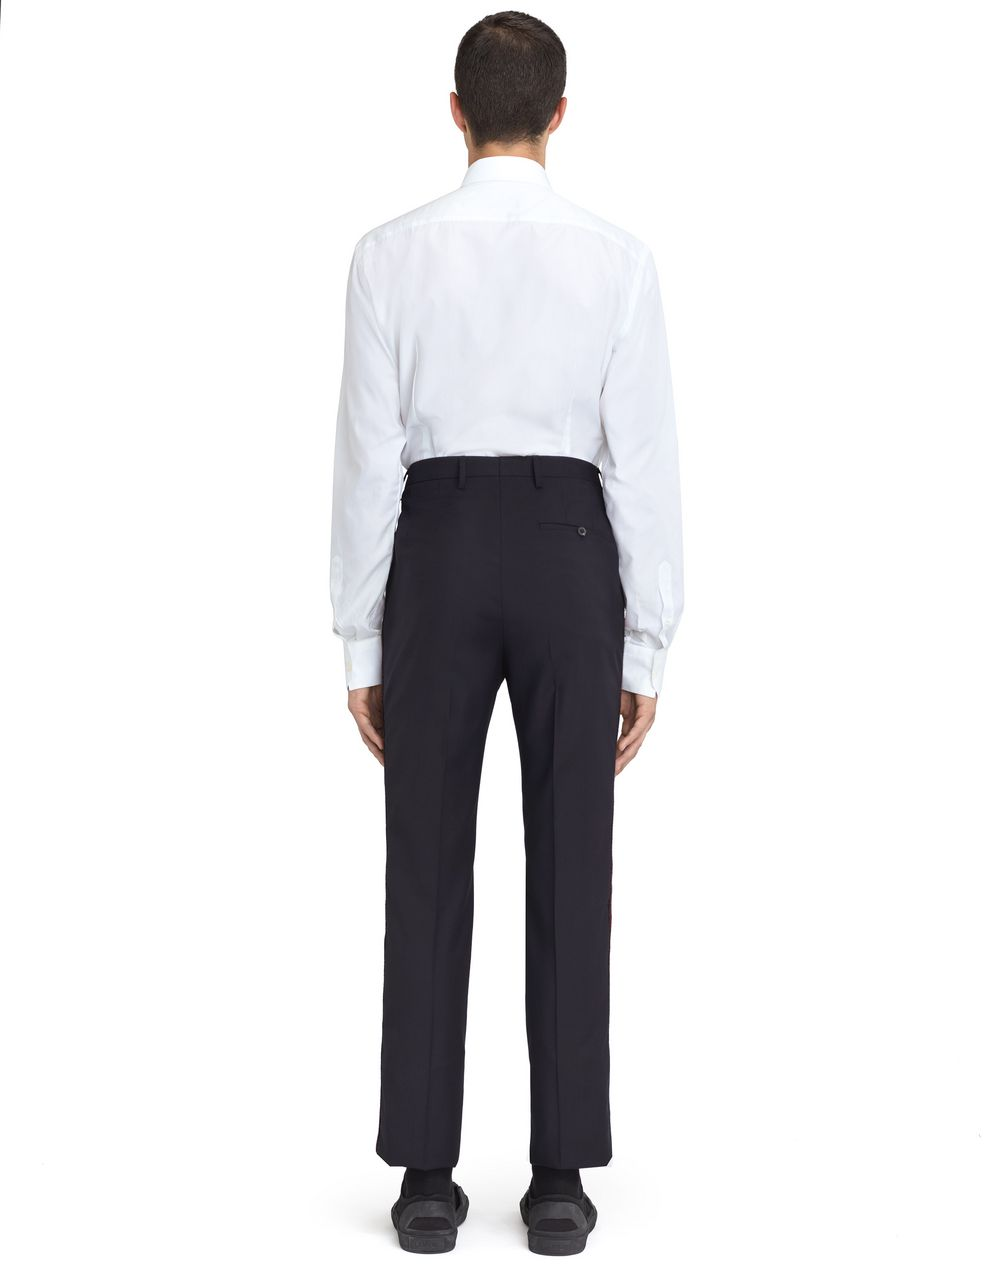 NAVY BLUE TROUSERS WITH JACQUARD BANDS  - Lanvin